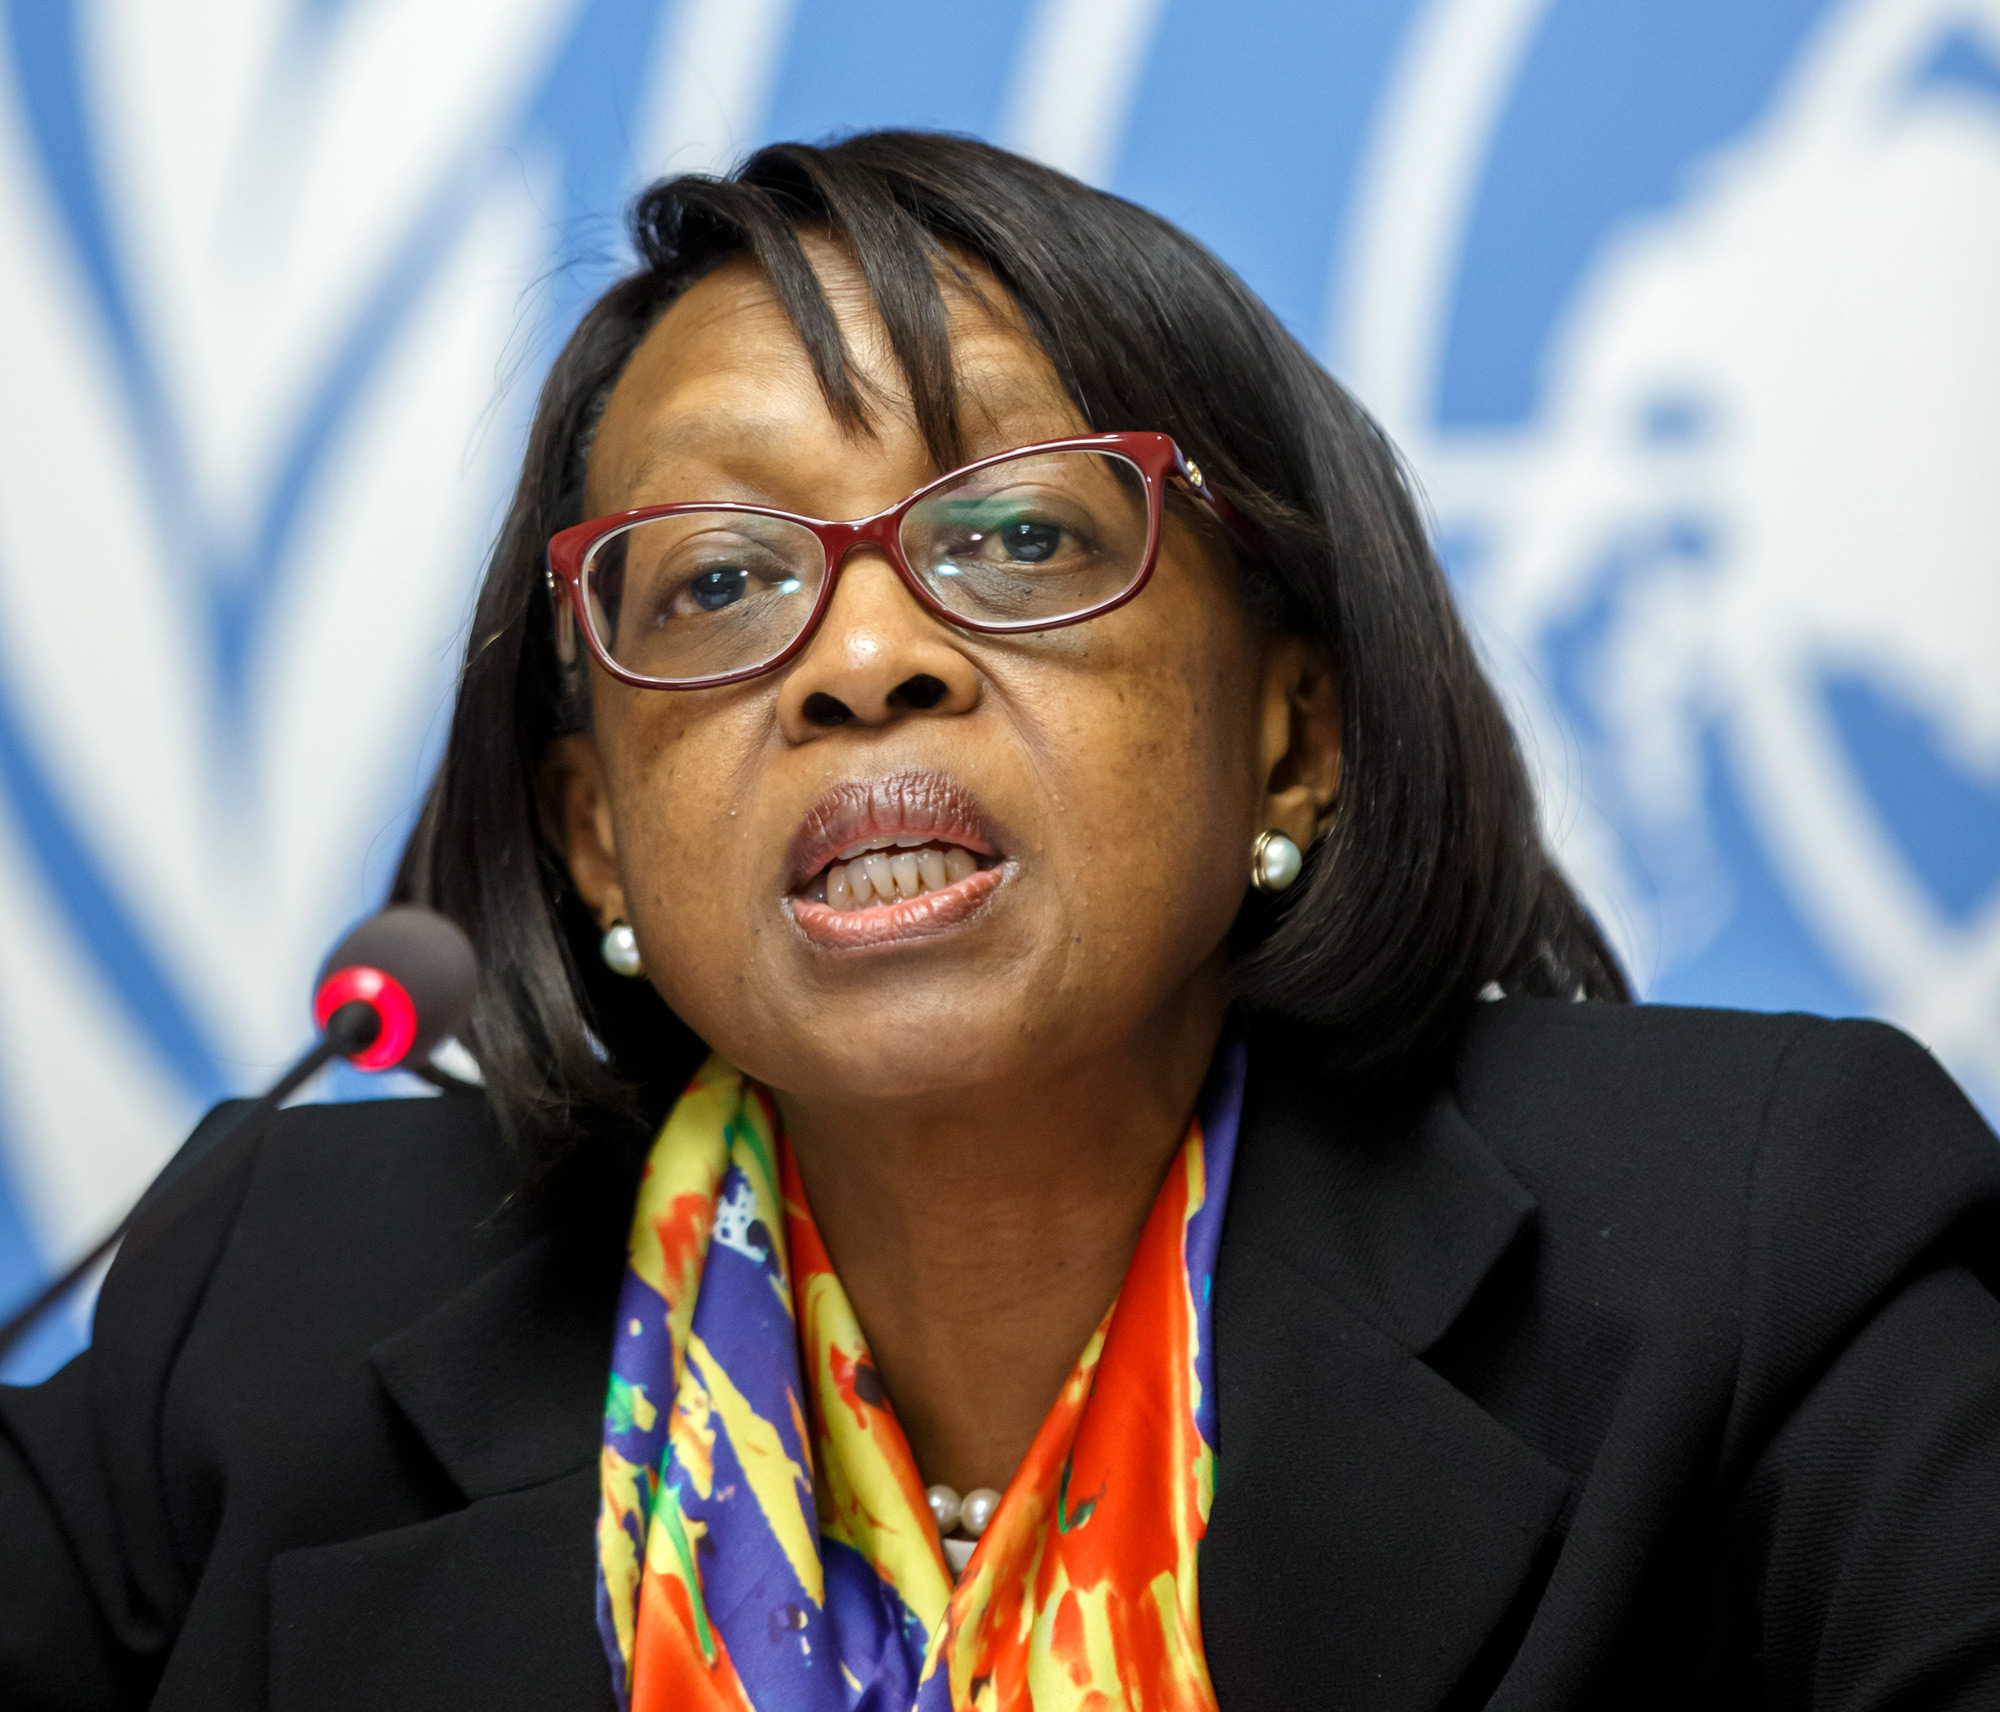 Dr. Matshidiso Moeti, World Health Organization regional director for Africa, speaks during a press conference at the European headquarters of the United Nations in Geneva, Switzerland, on February 1, 2019.